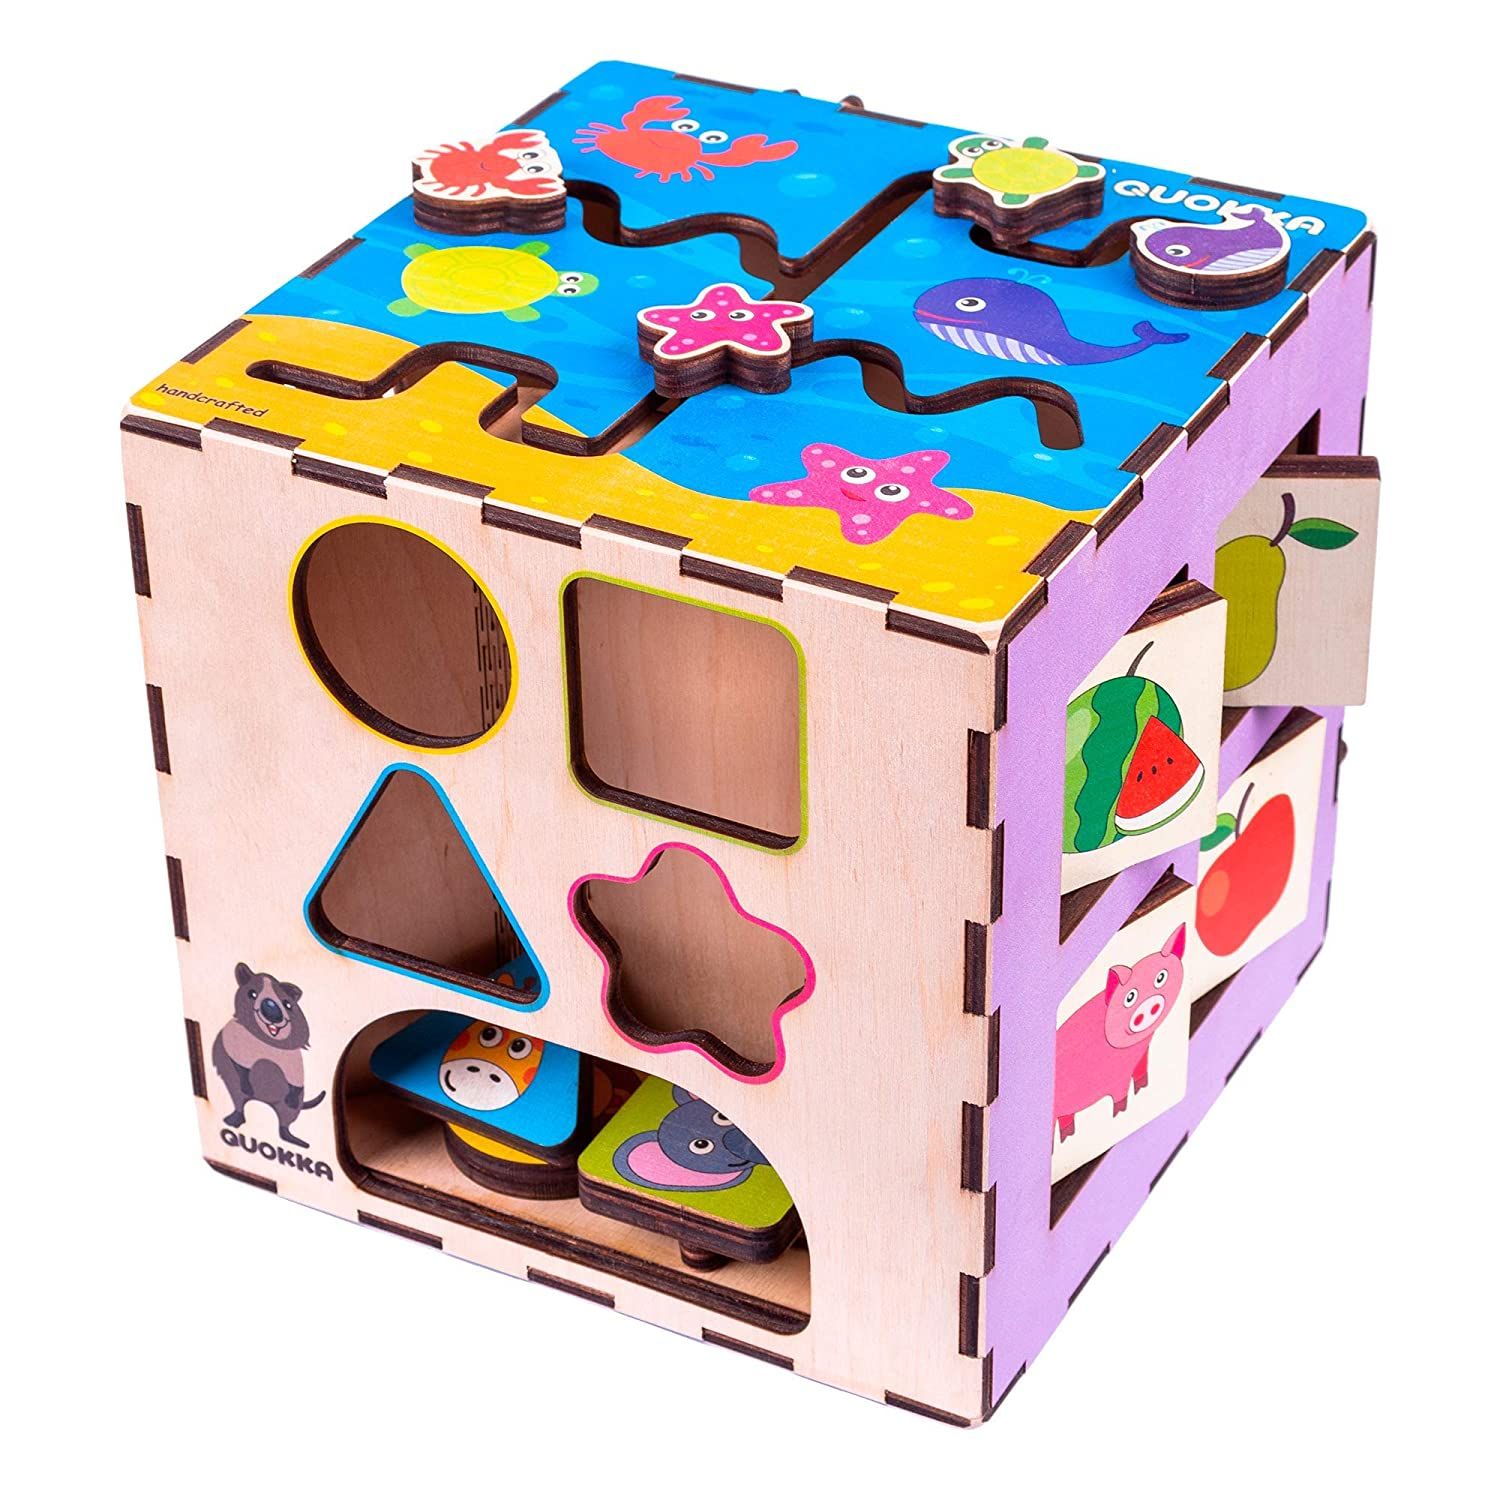 Quokka Busy Learners Activity Cube Top Wooden Busy Cube For Baby Activity Cube For 2 Years Old Developmental Toy Sturdy Wooden Learning Toy 4